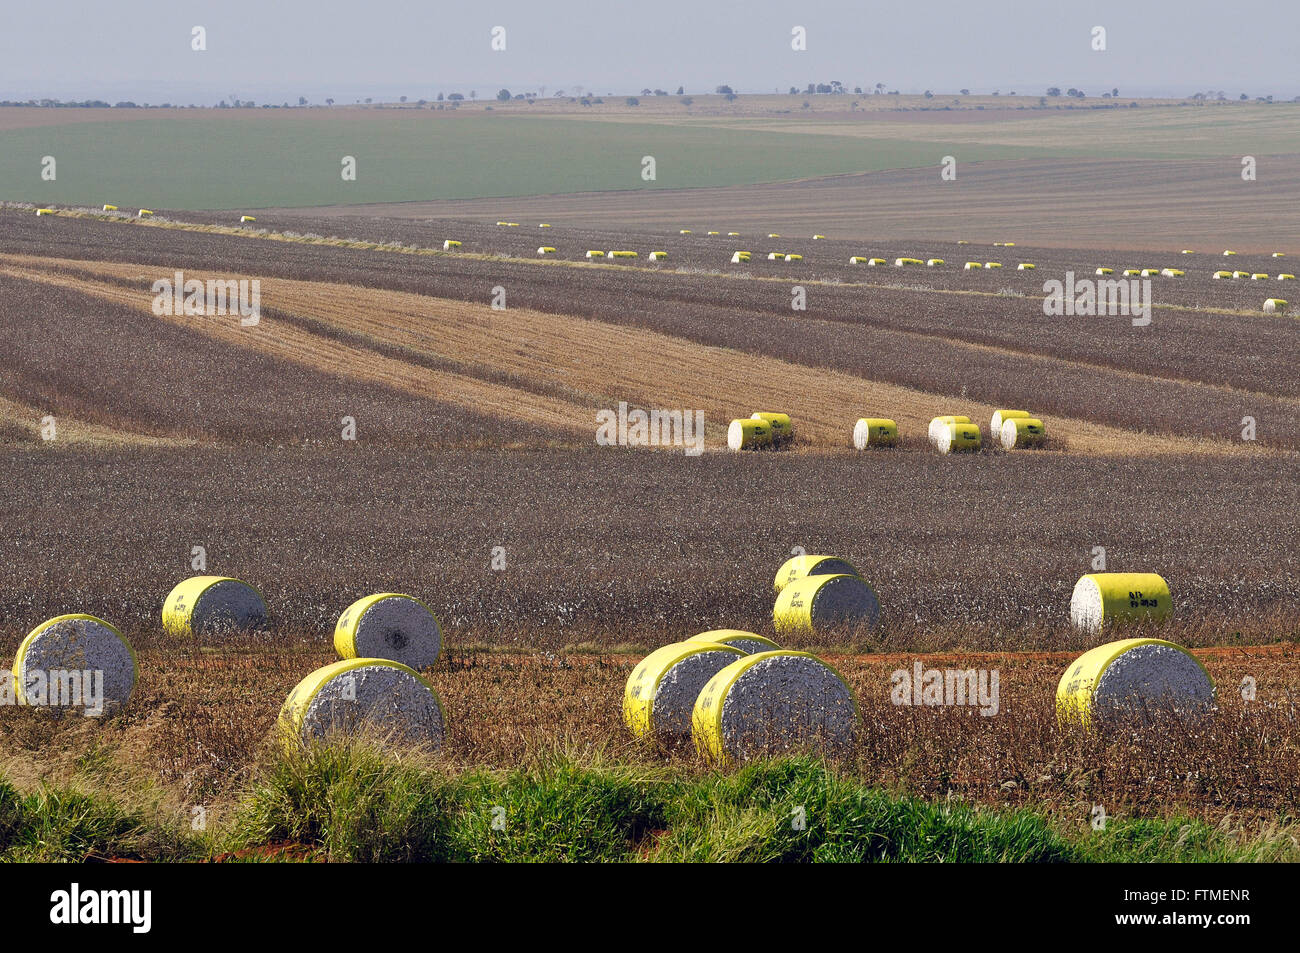 Pressed bales of cotton in the field by own harvester - Stock Image